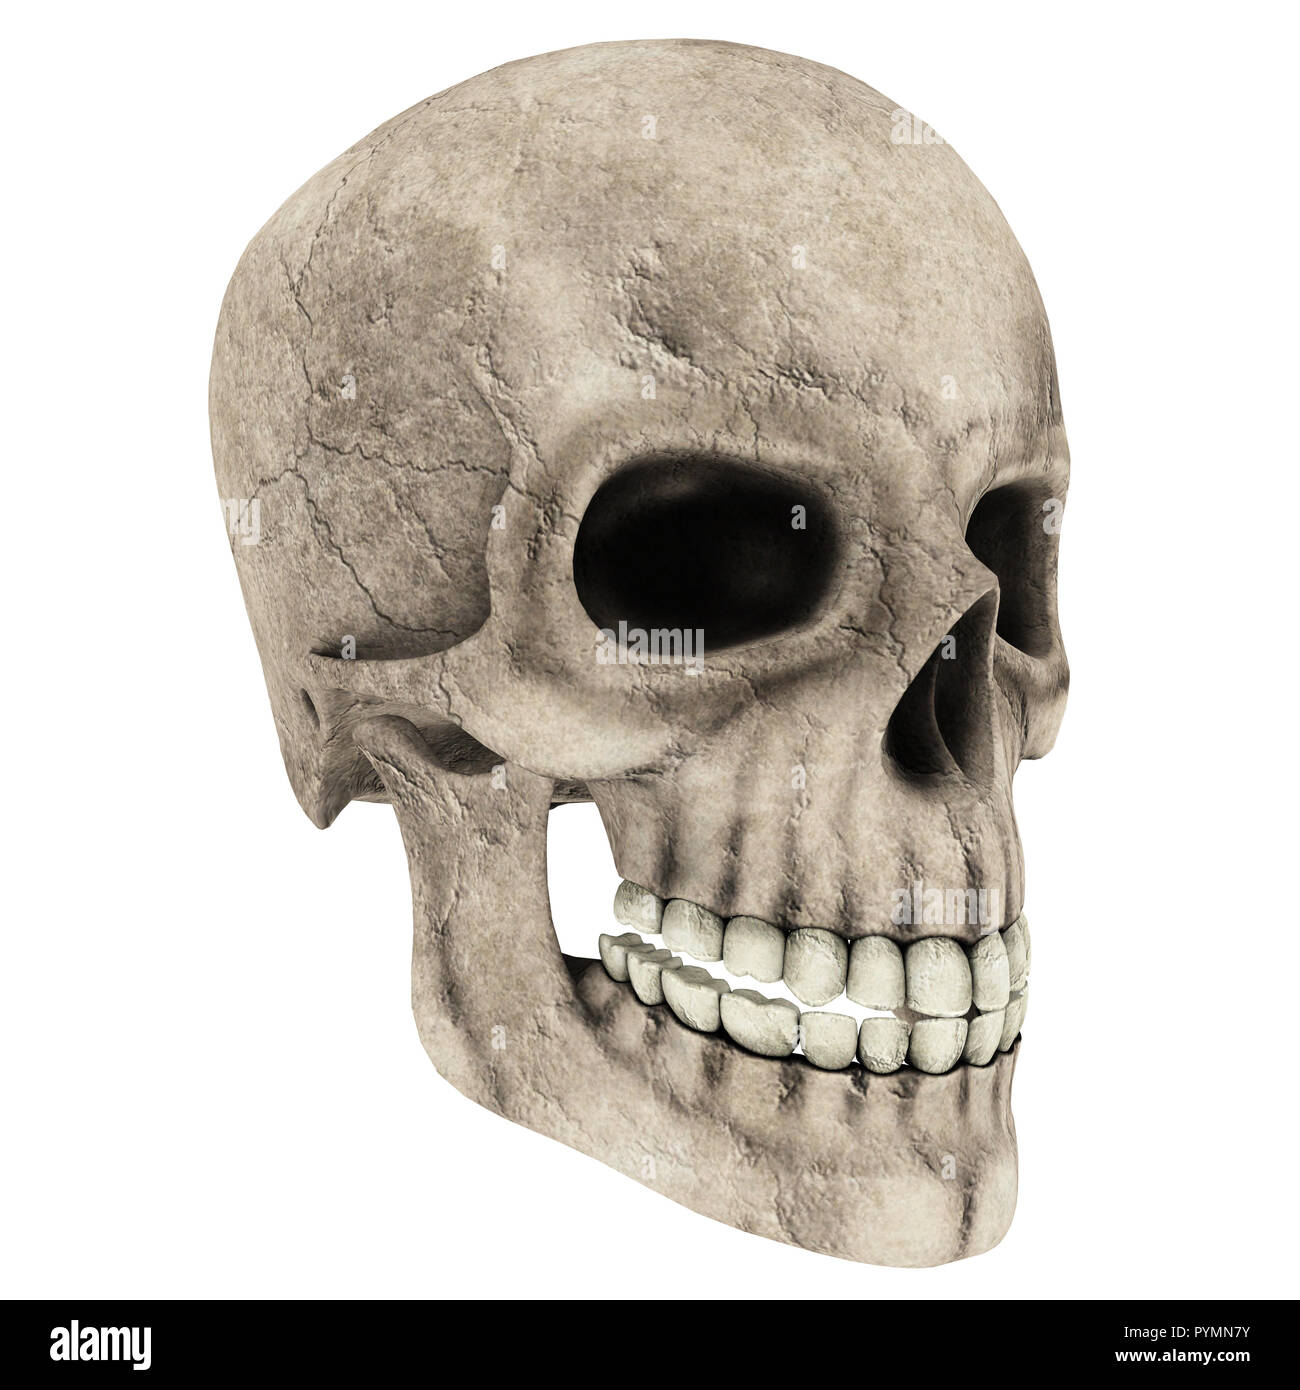 skull isolated in White background 3d illustration for Hallowee or design - Stock Image